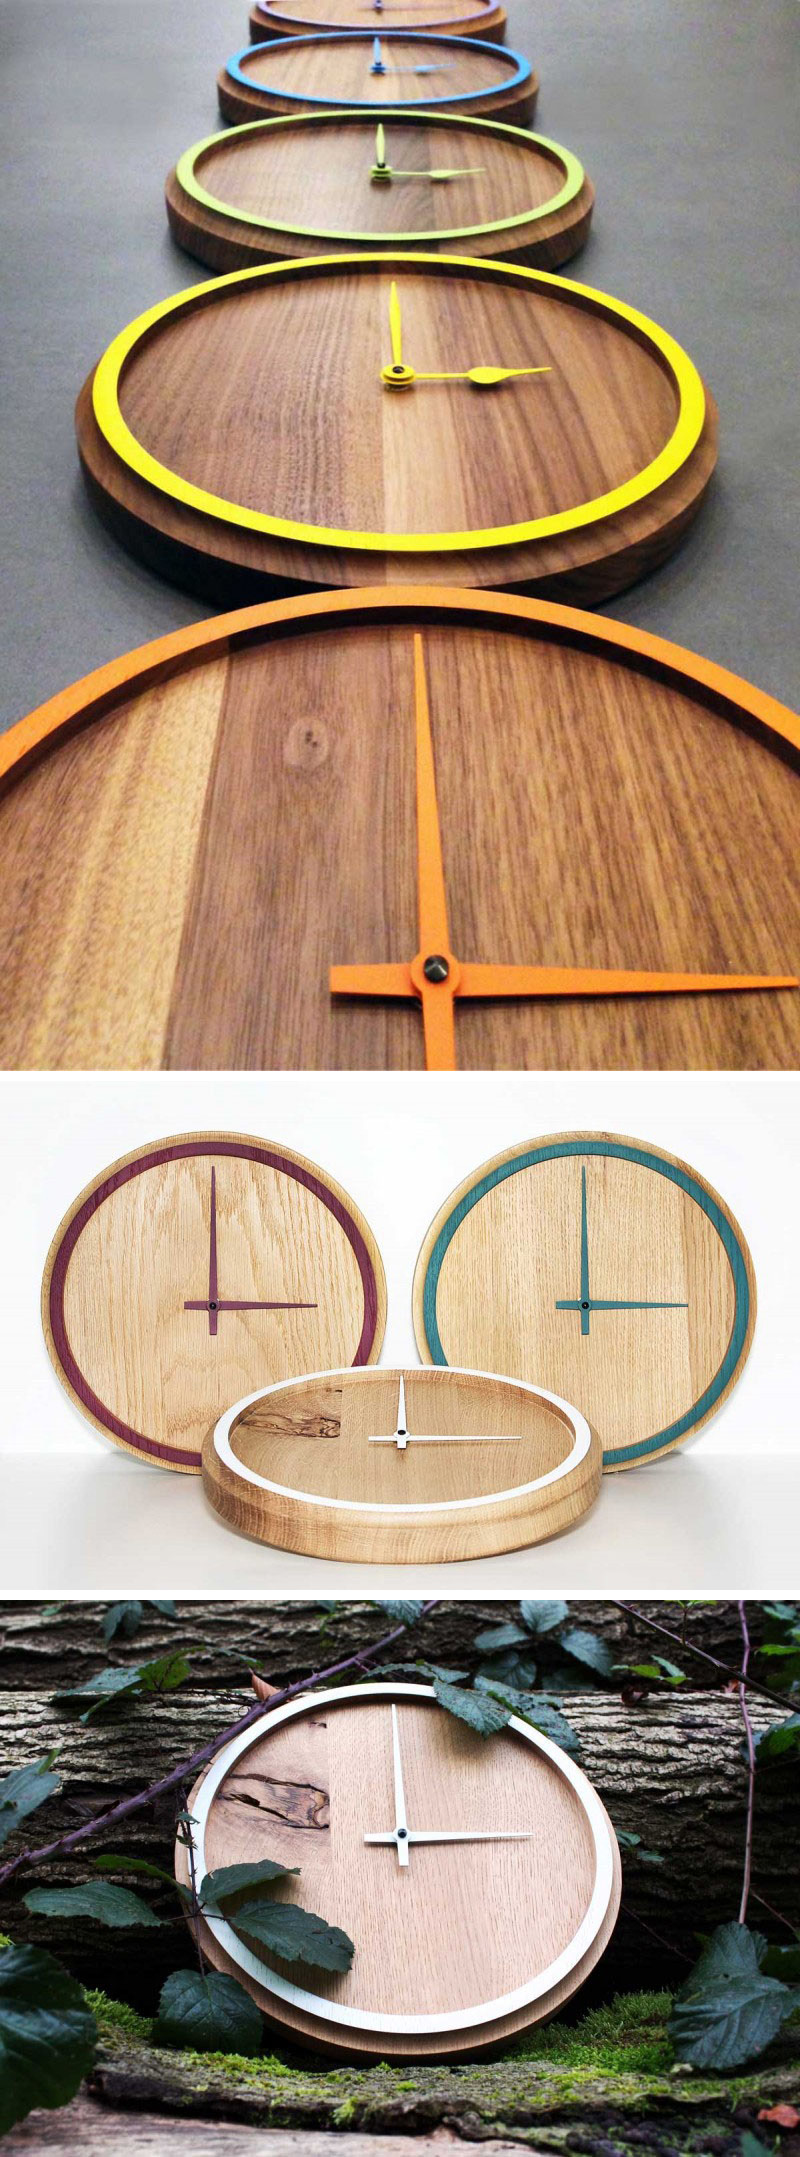 The hands of these solid wood clocks match the colorful rims to make sure the clocks are simple, fun, and modern.